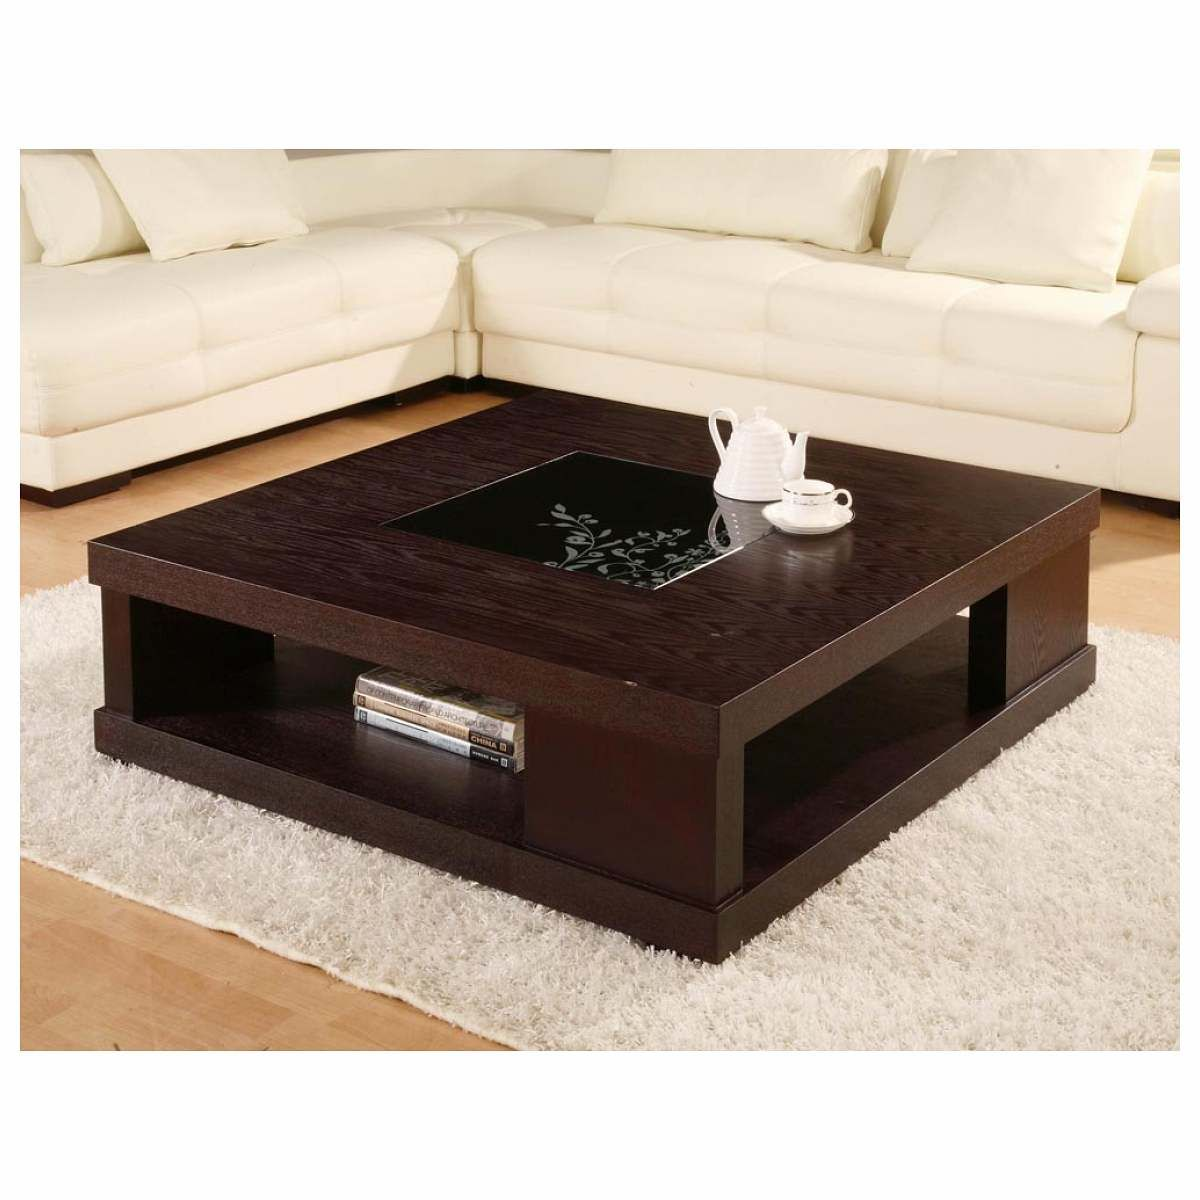 for sale dante coffee table table